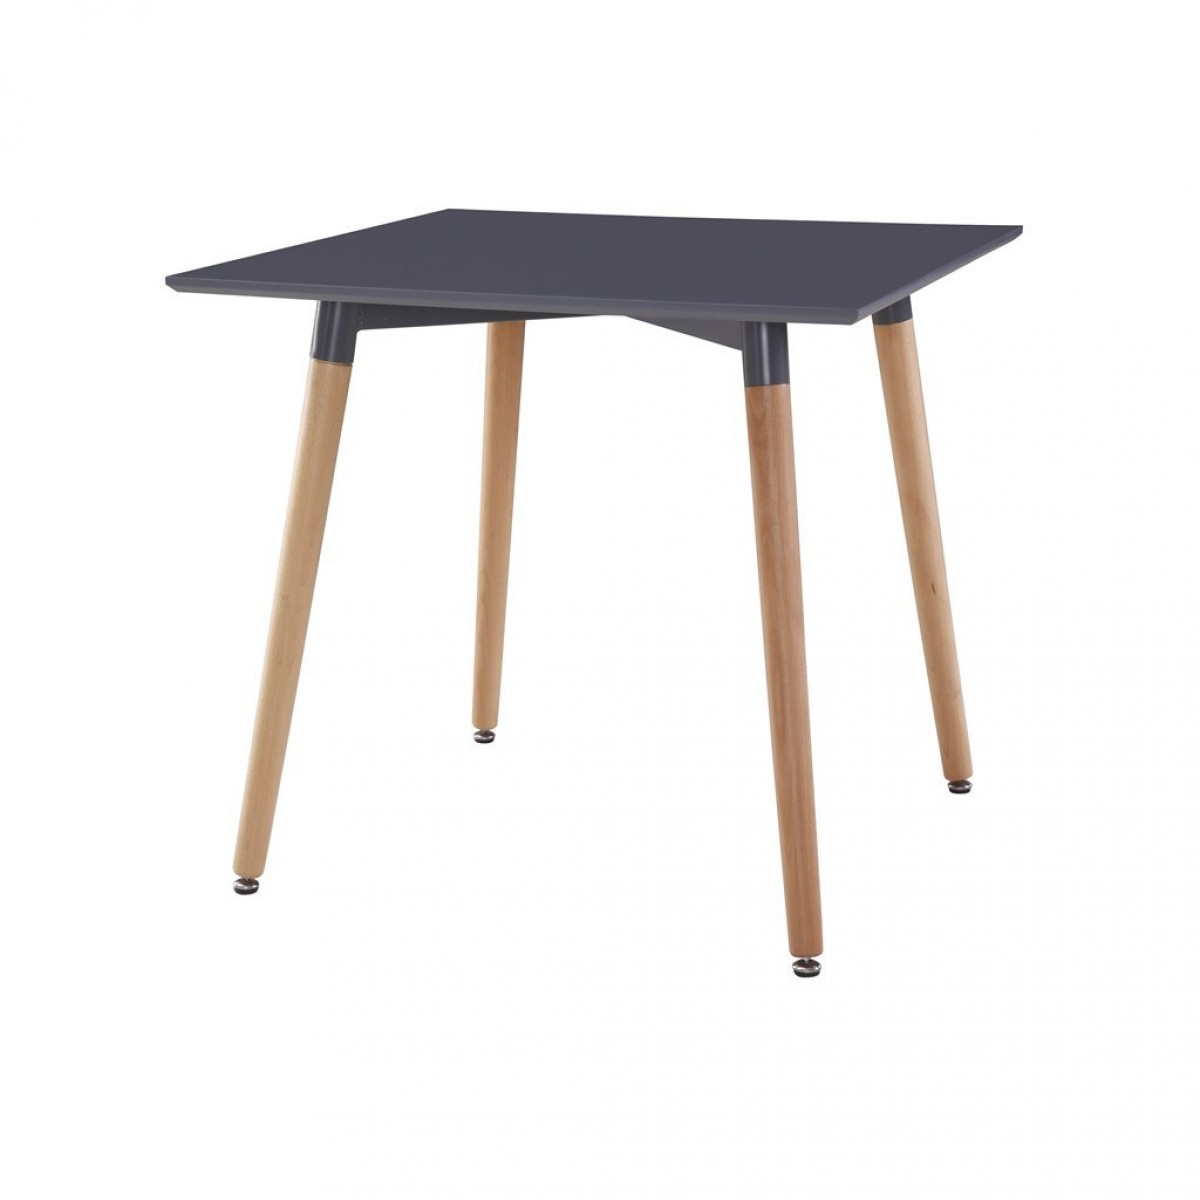 Table carr e scandinave grise les douces nuits de ma for Table scandinave grise